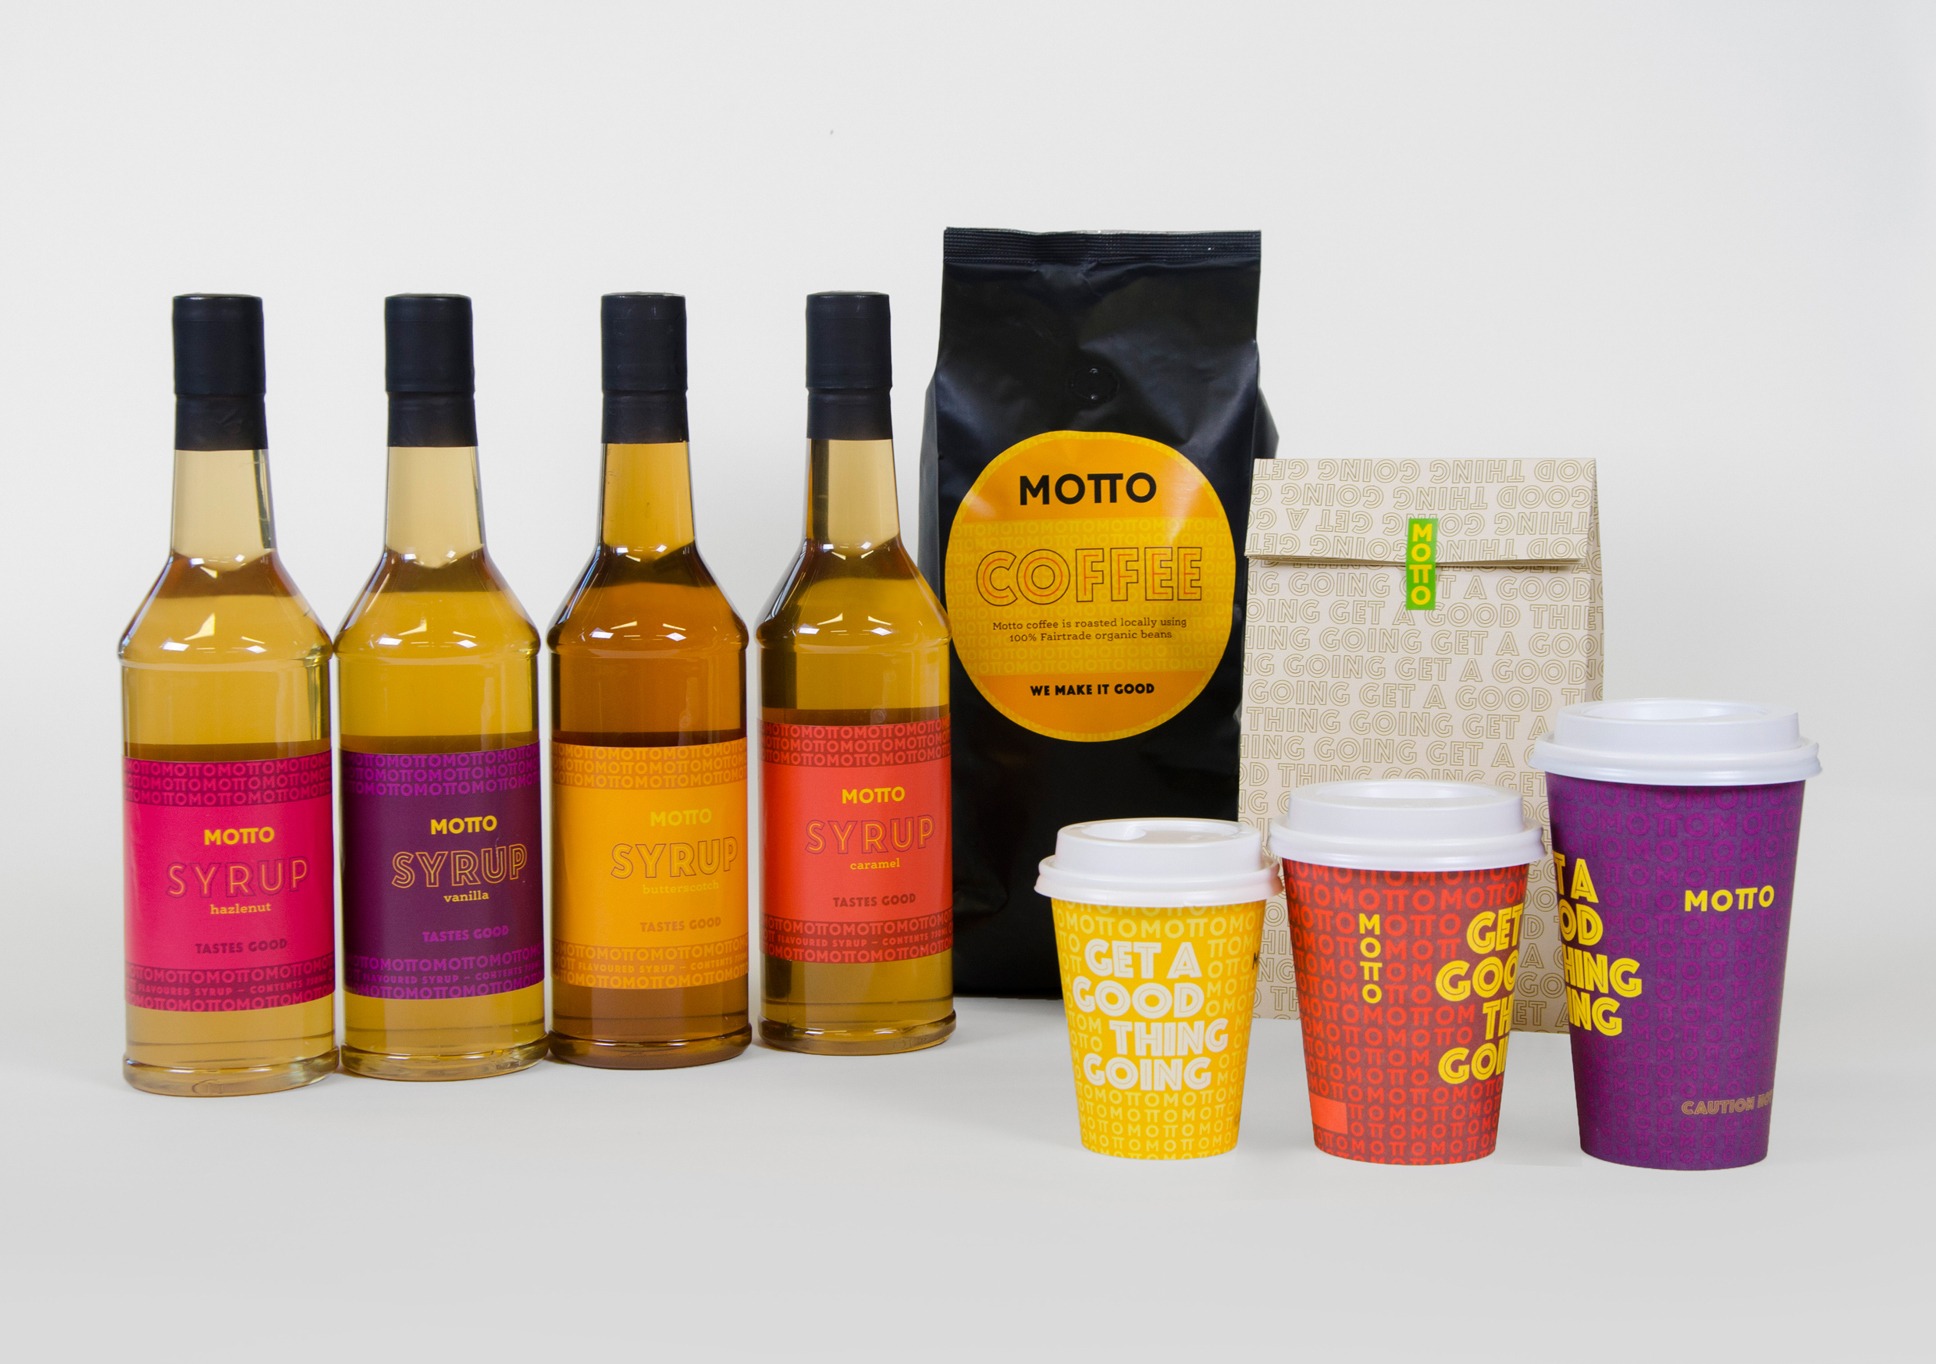 Motto syrup and coffee packaging